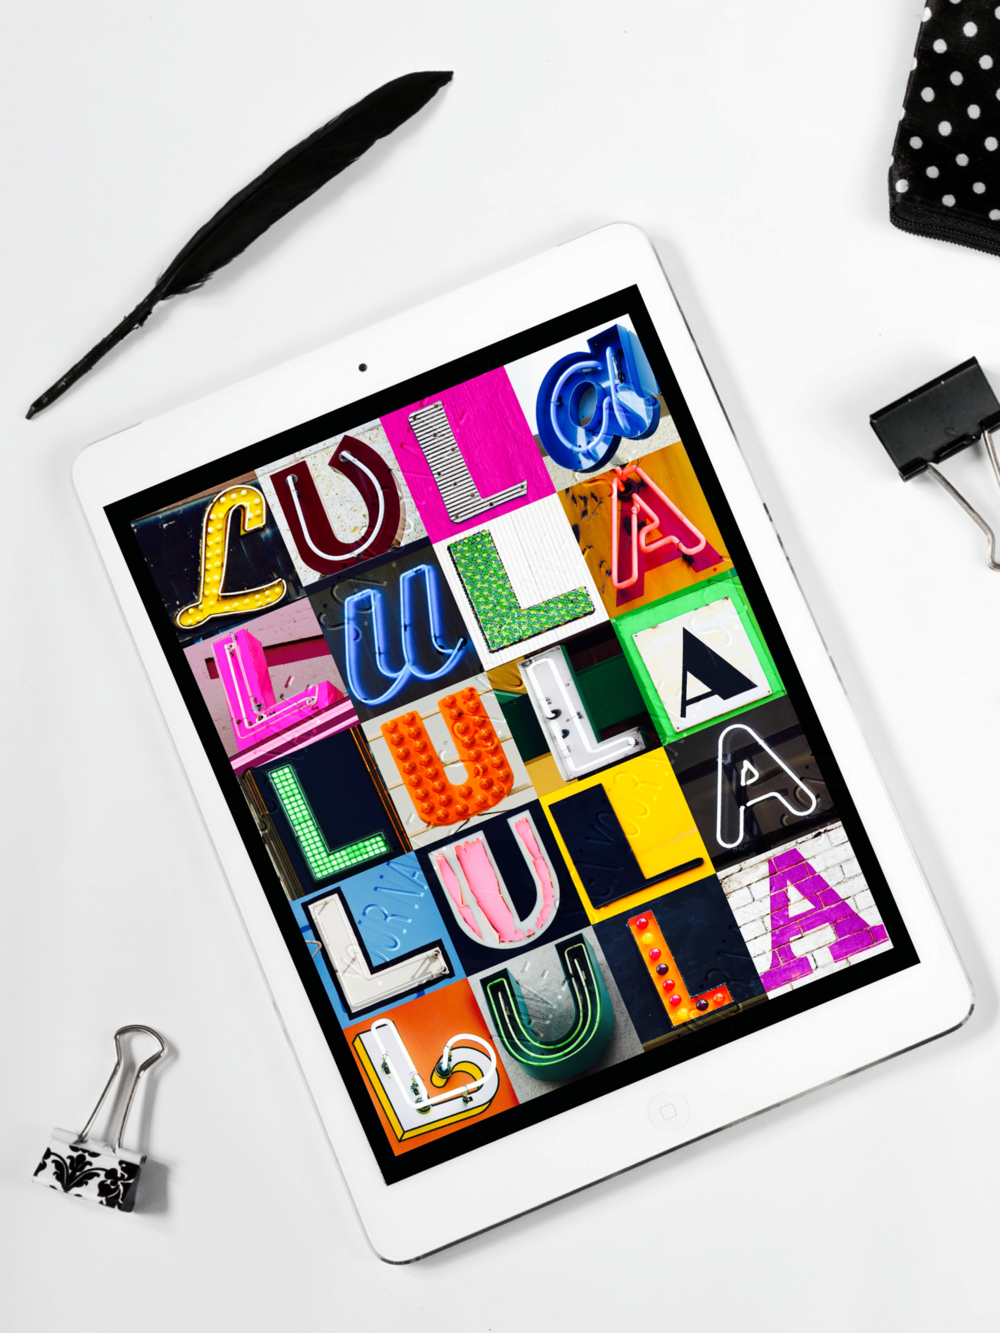 https://www.etsy.com/listing/385225132/personalized-poster-featuring-lula